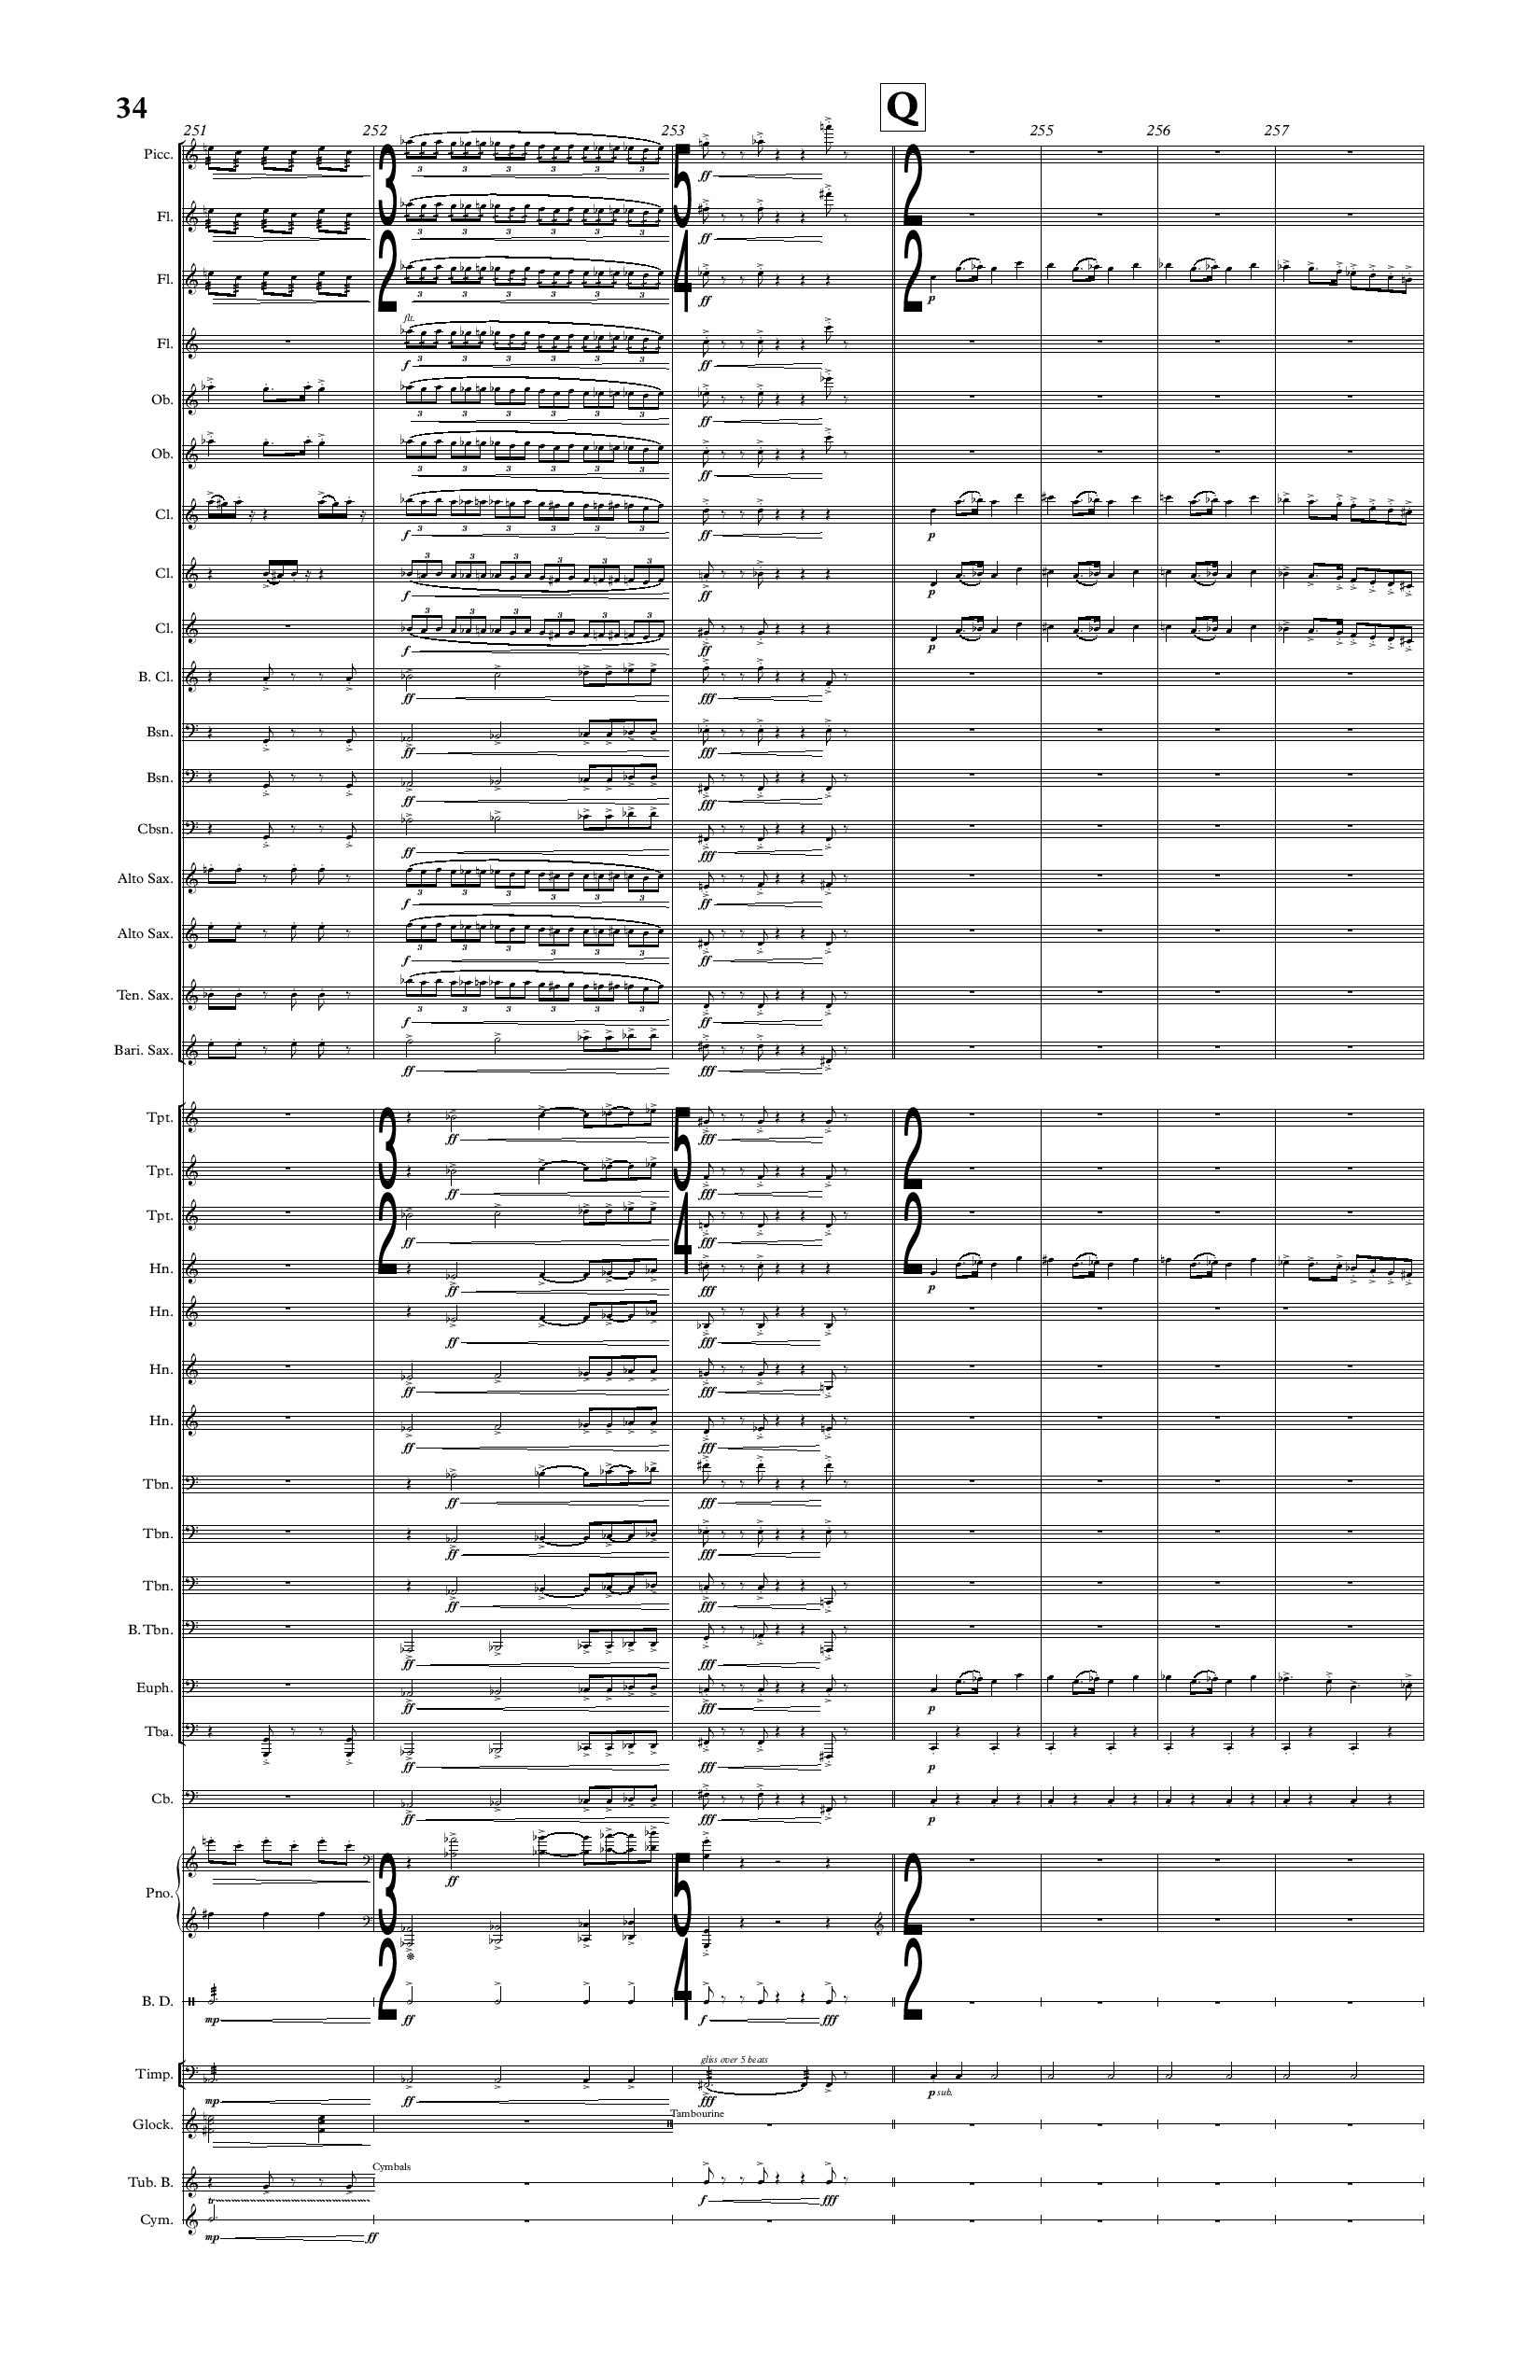 Rupture Full Transposed Score - Full Score (1)-page-034